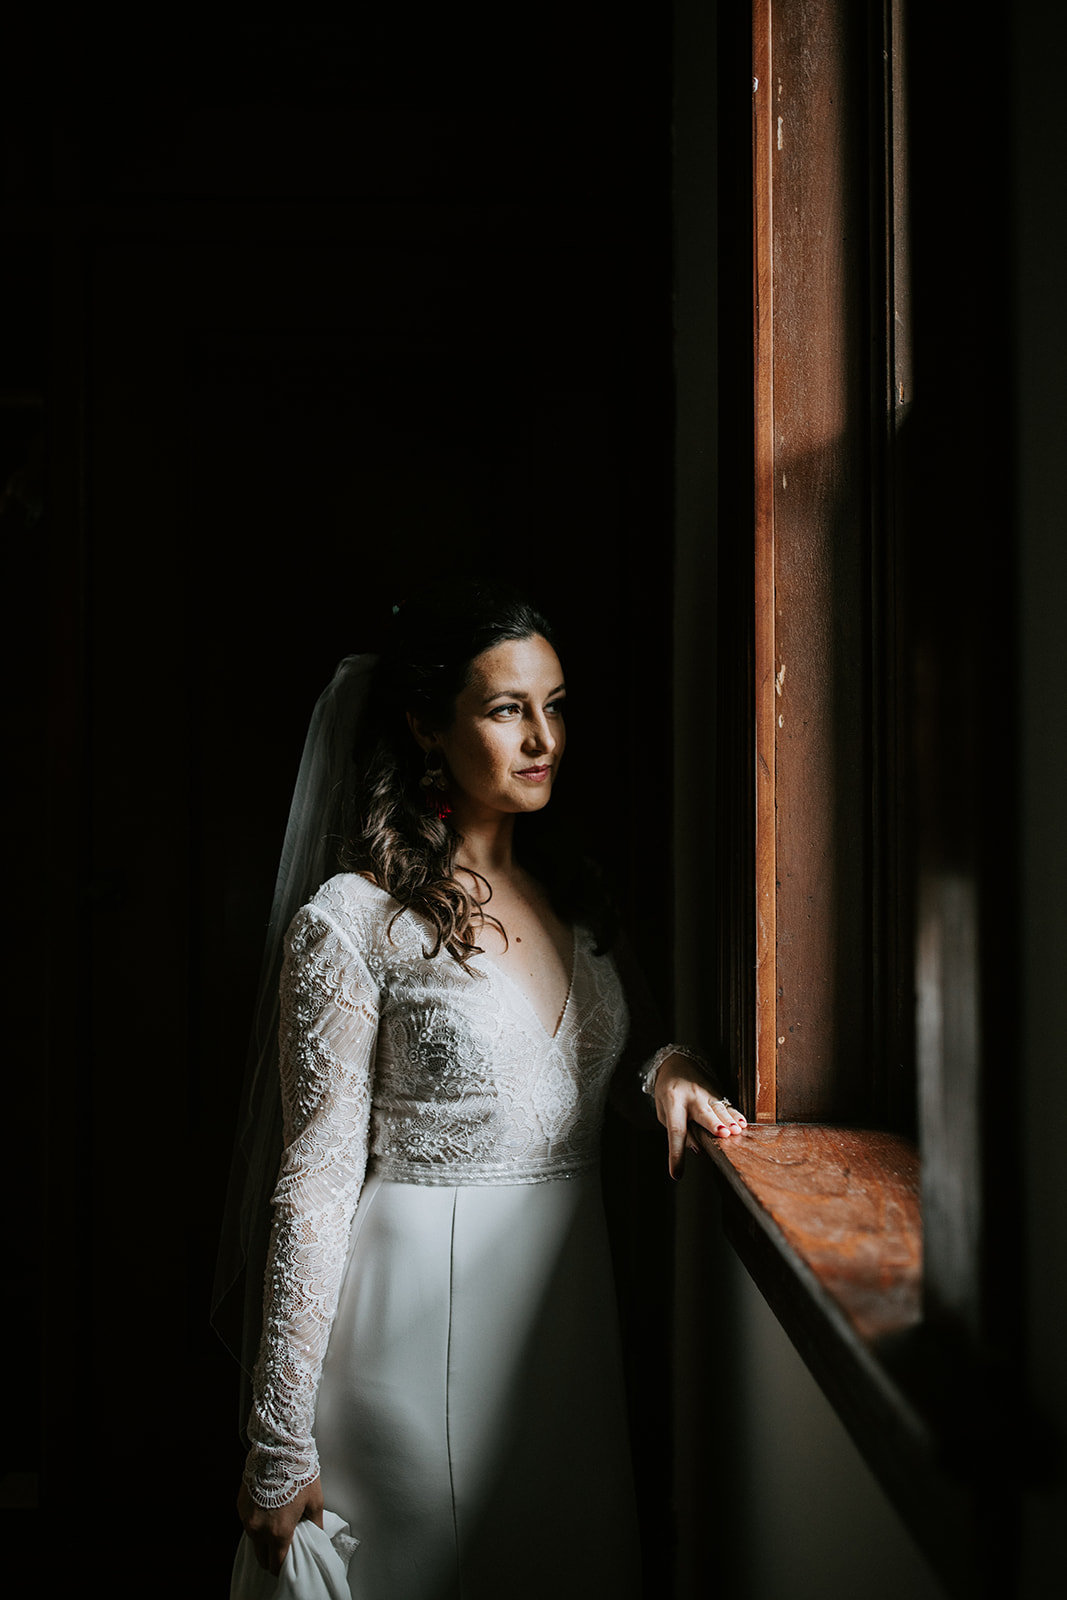 A bride looks out a window.